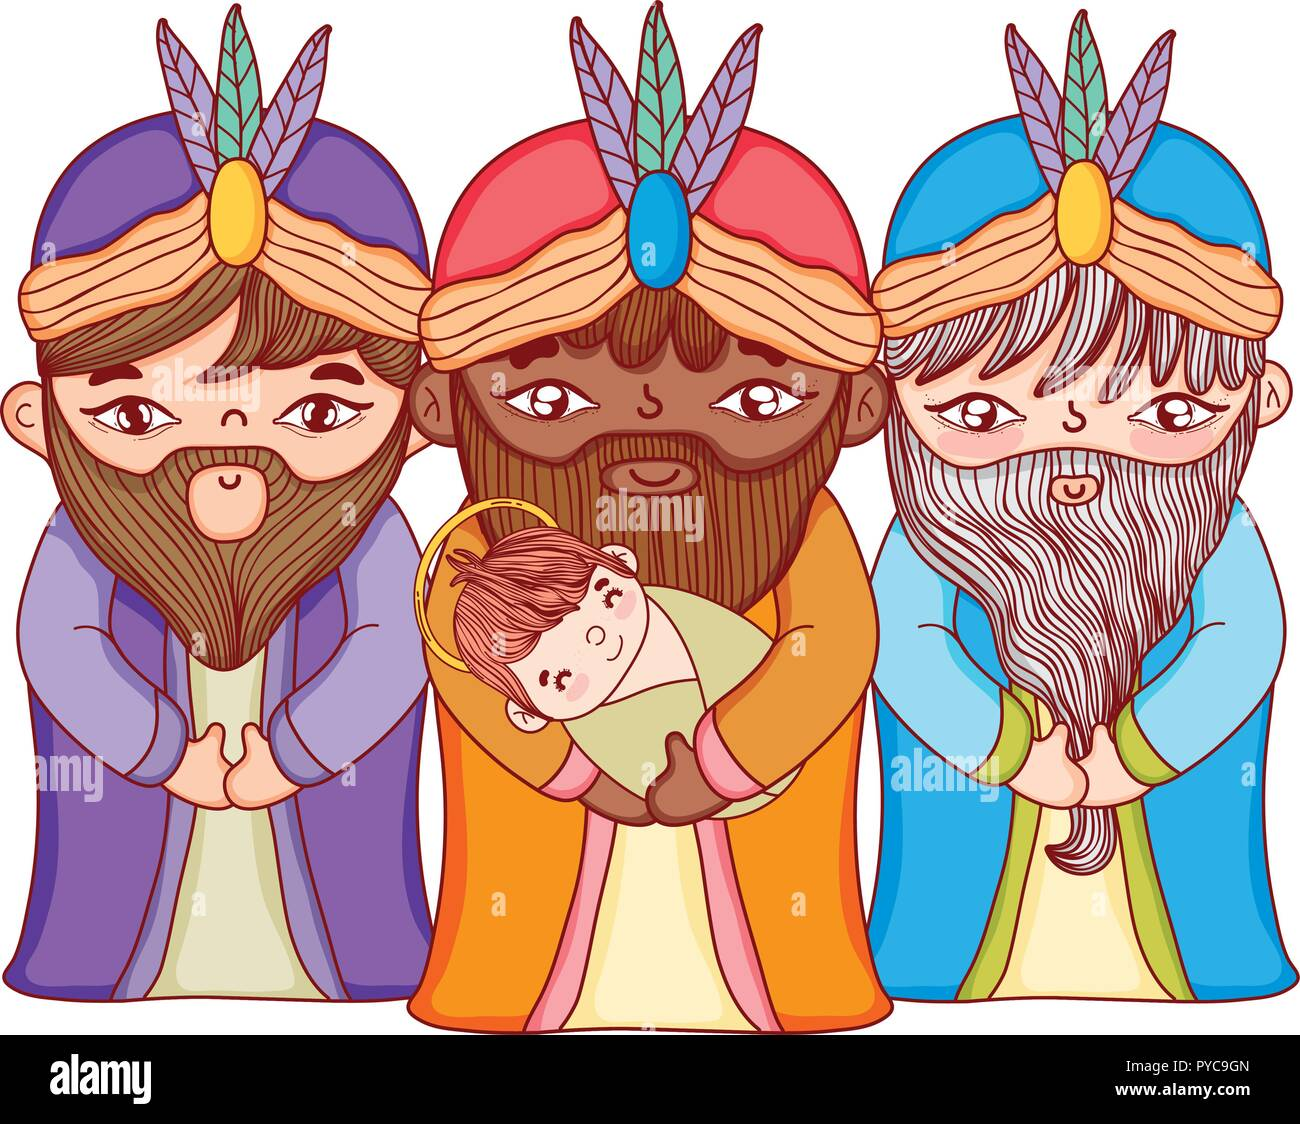 Christmas nativity scene cartoon - Stock Vector